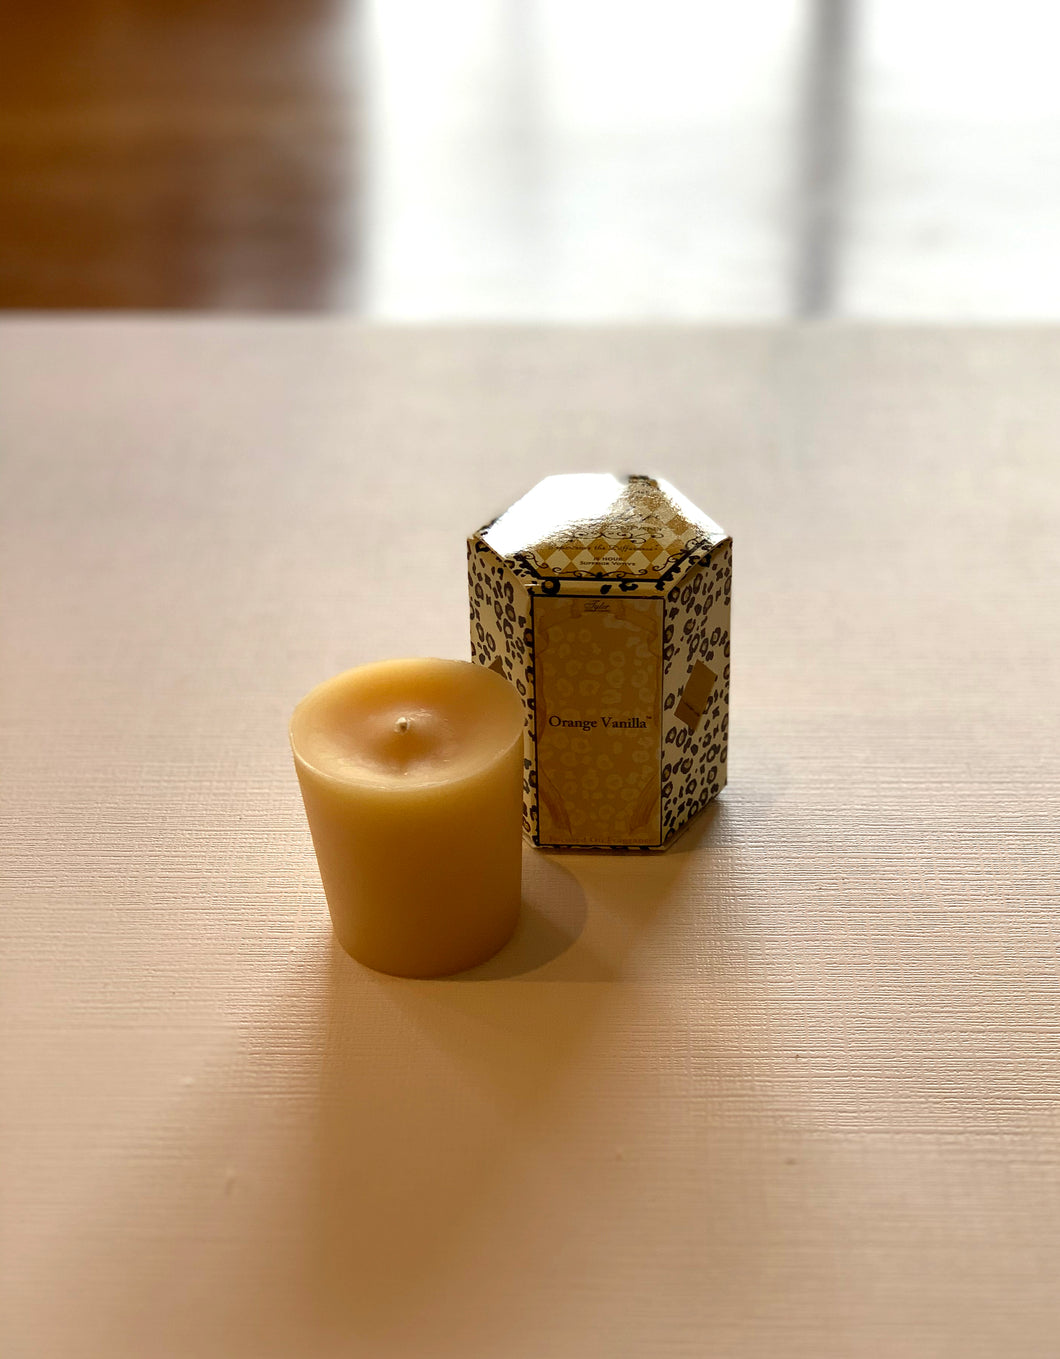 Orange Vanilla votive